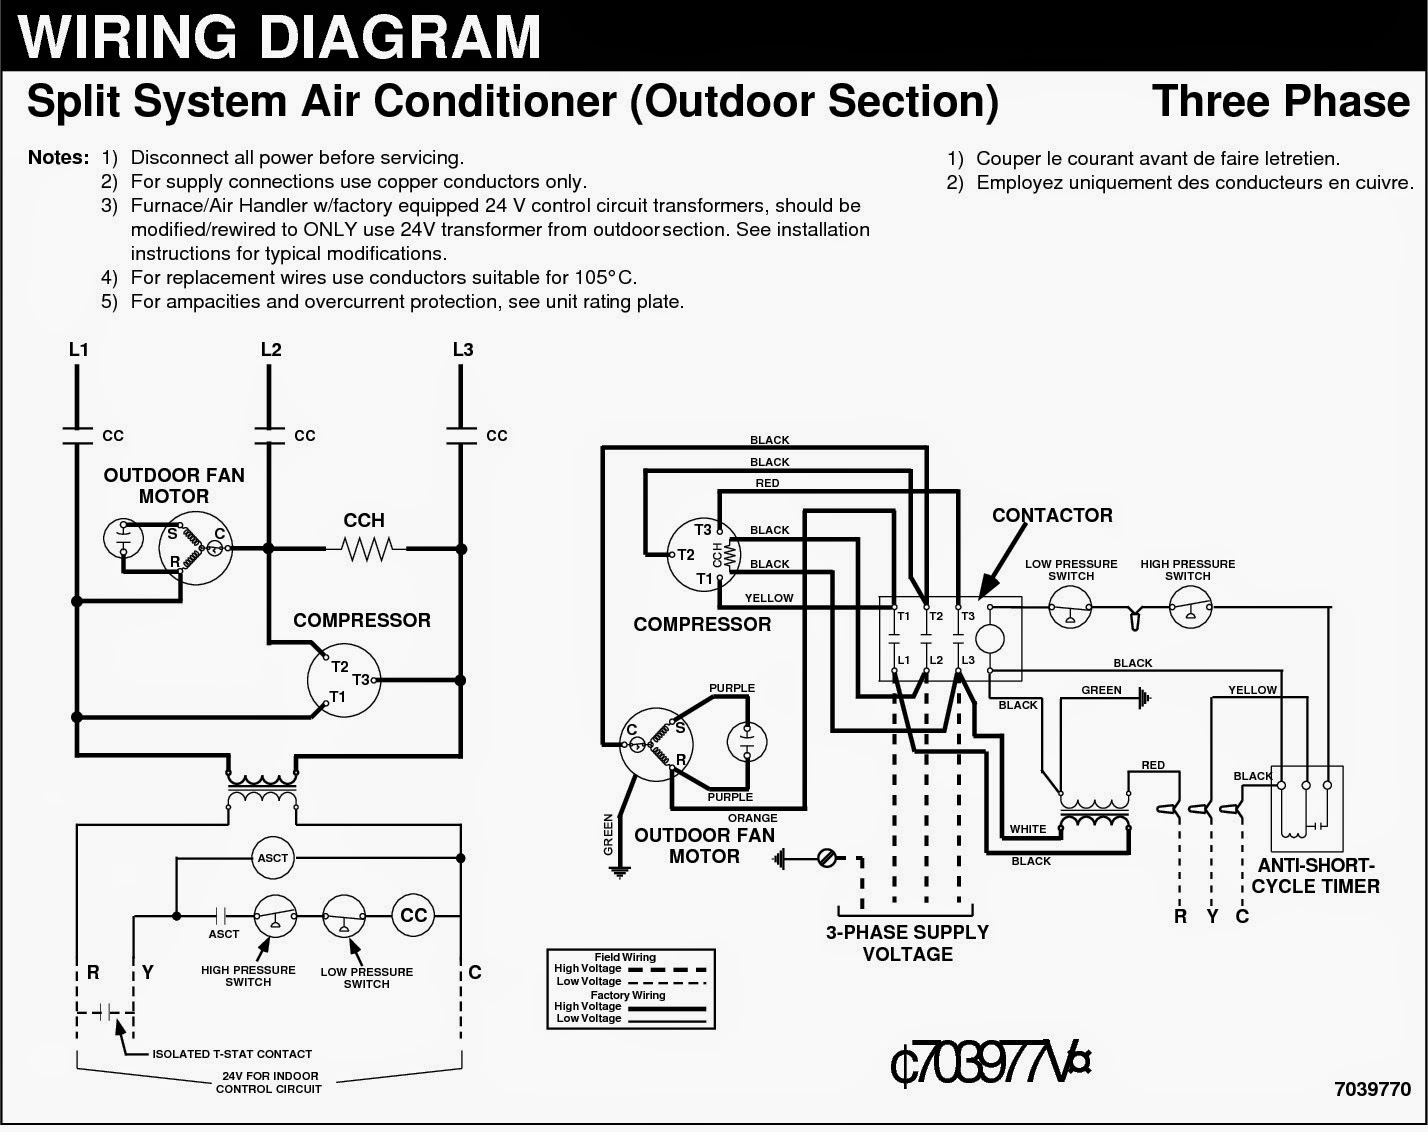 3+phase electrical wiring diagrams for air conditioning systems part two starter panel wiring diagram at soozxer.org